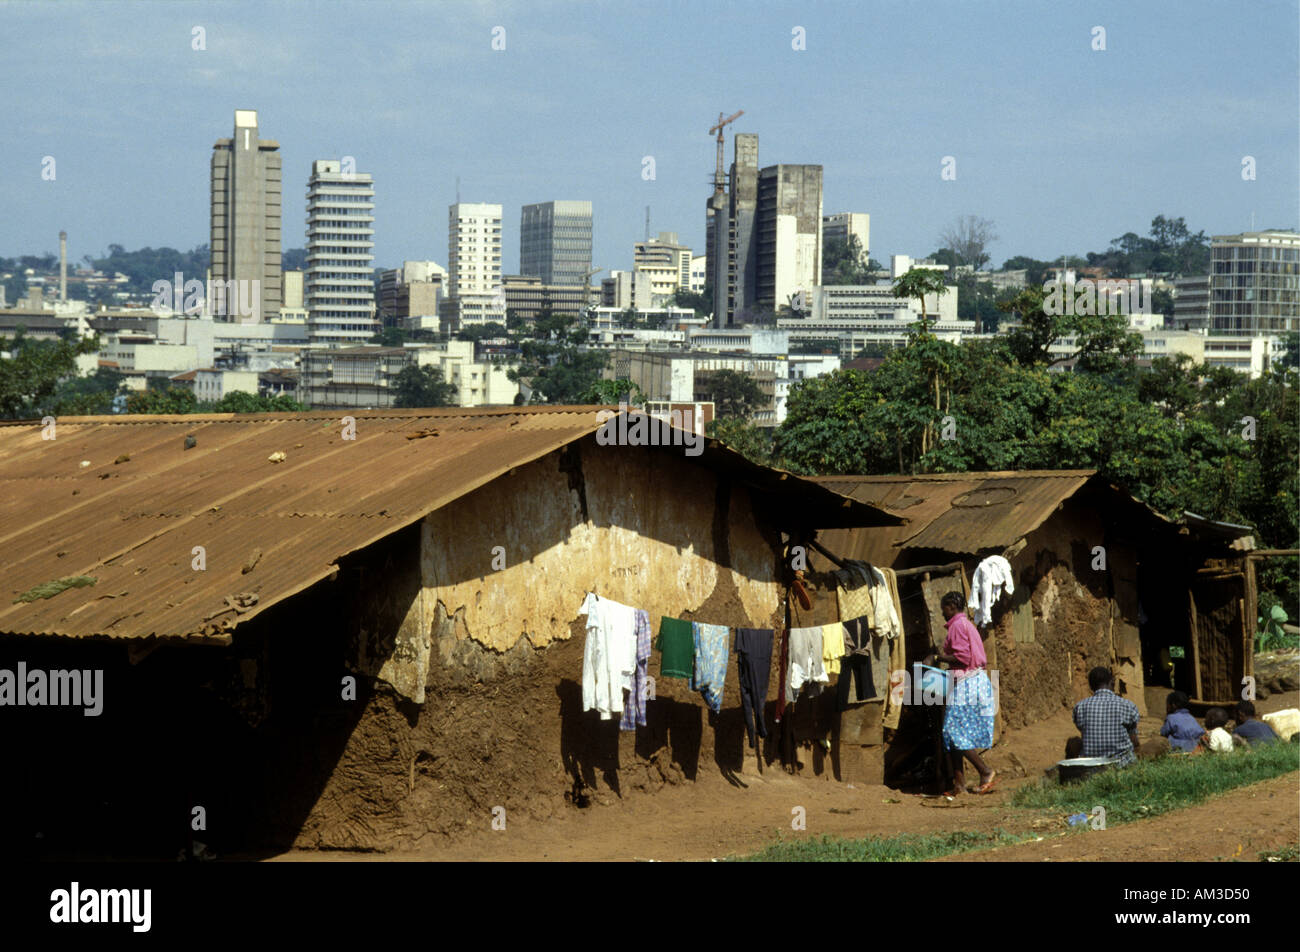 Shanty town houses within sight of the high rise modern buildings in central Kampala capital city of Uganda East Africa - Stock Image